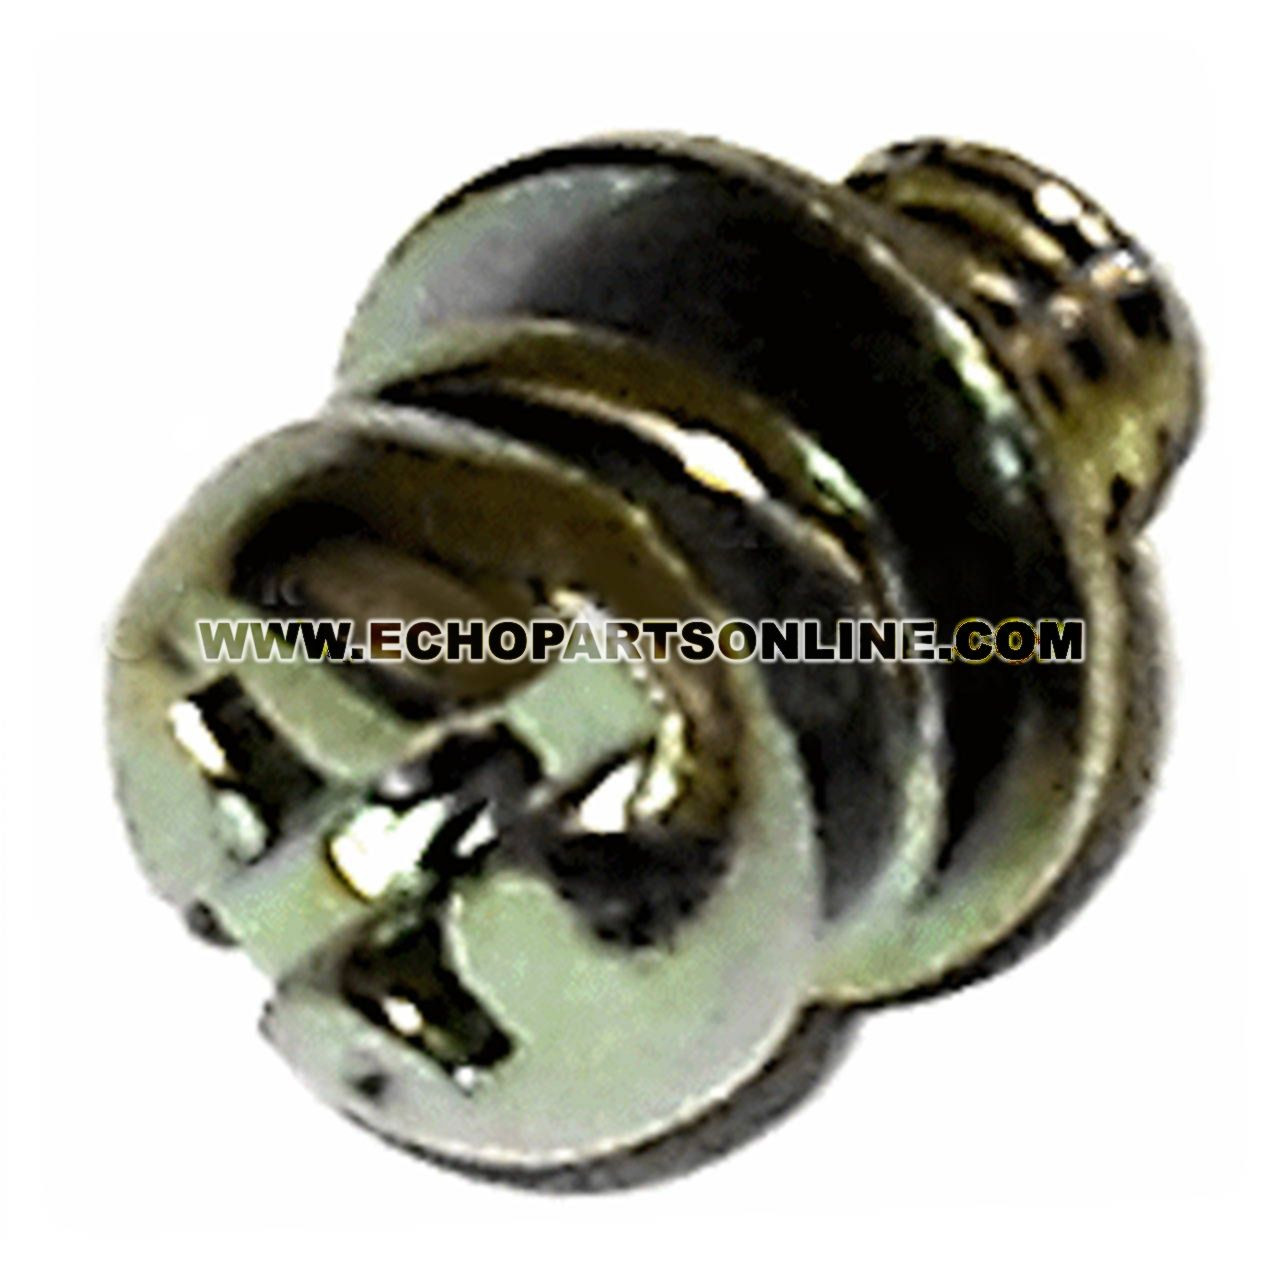 ECHO 90024204008 - SCREW - Image 1